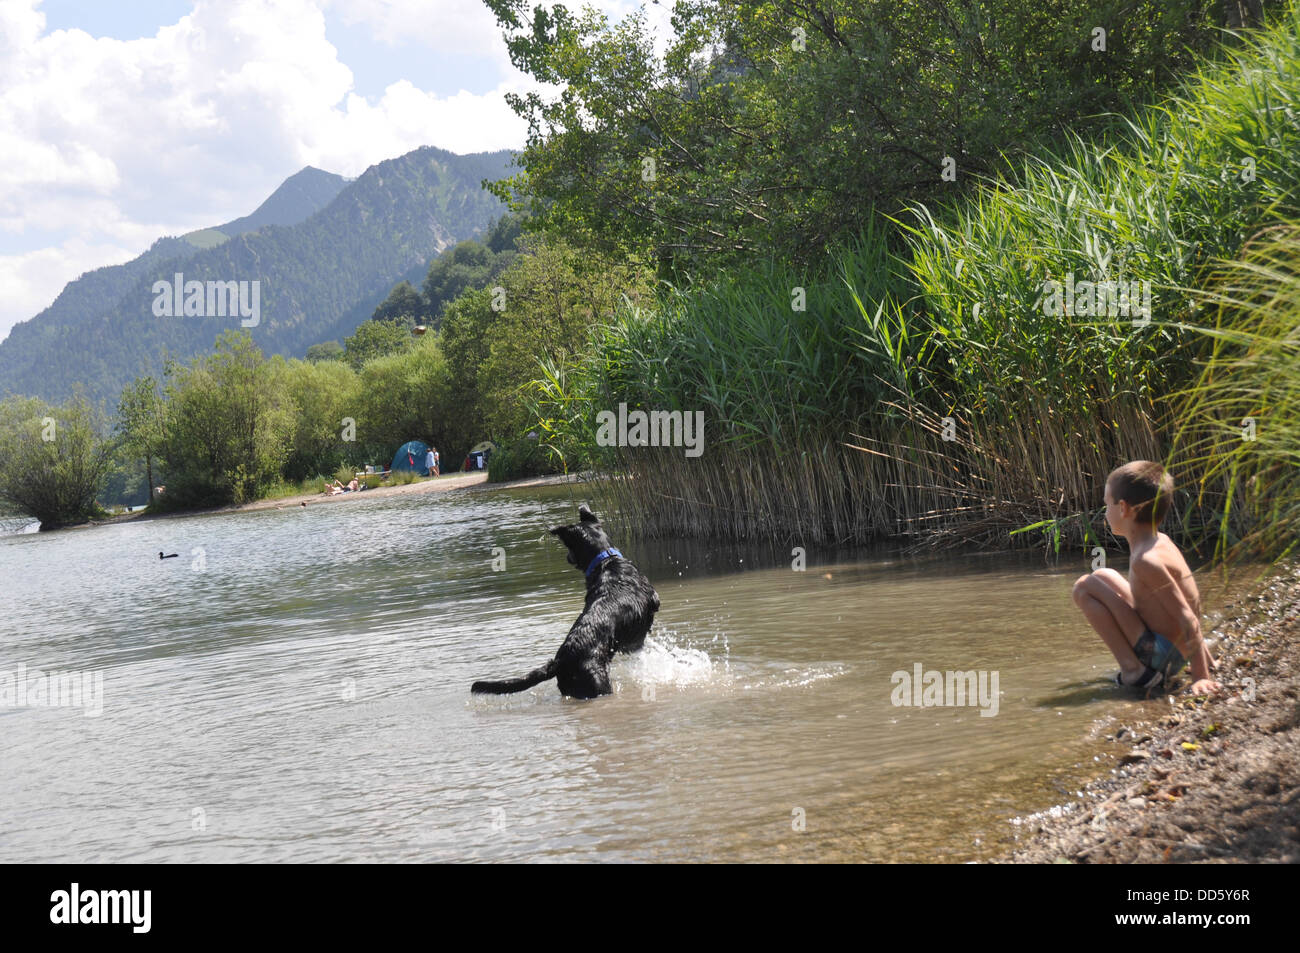 Schliersee, Upper Bavaria, Germany. A boy and his pet dog in the water Stock Photo